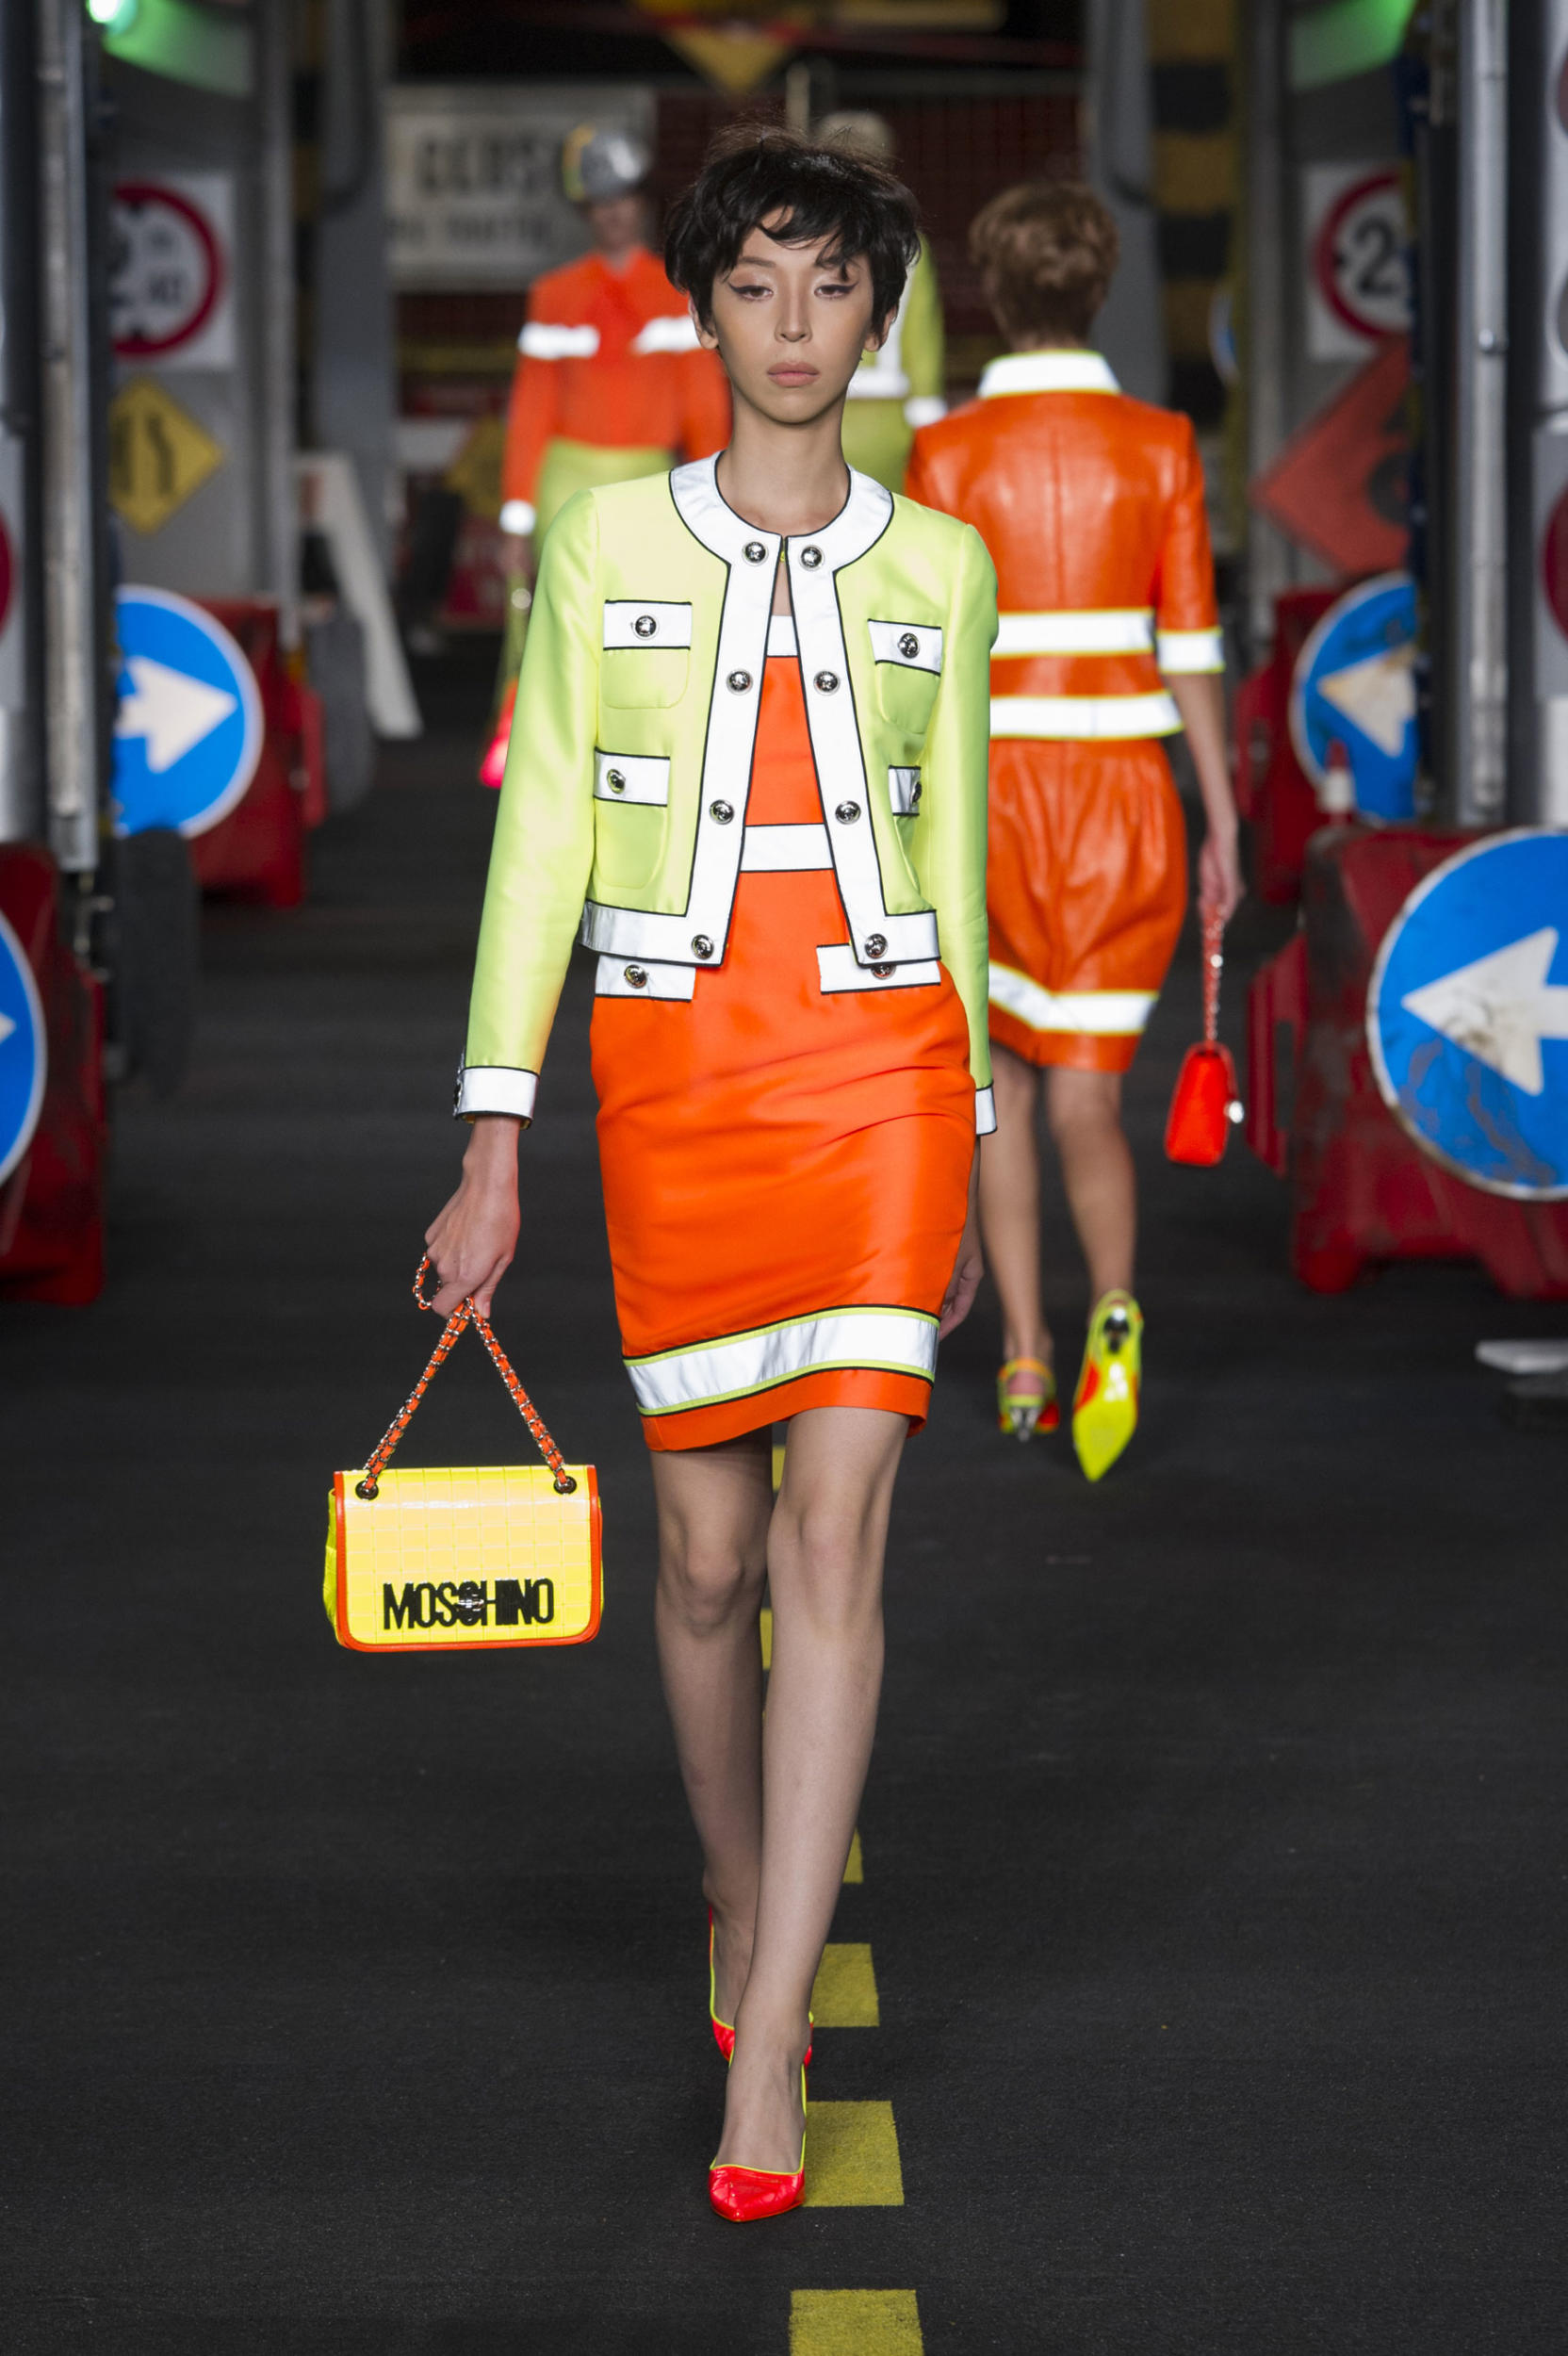 moschino-fashion-diaries-2